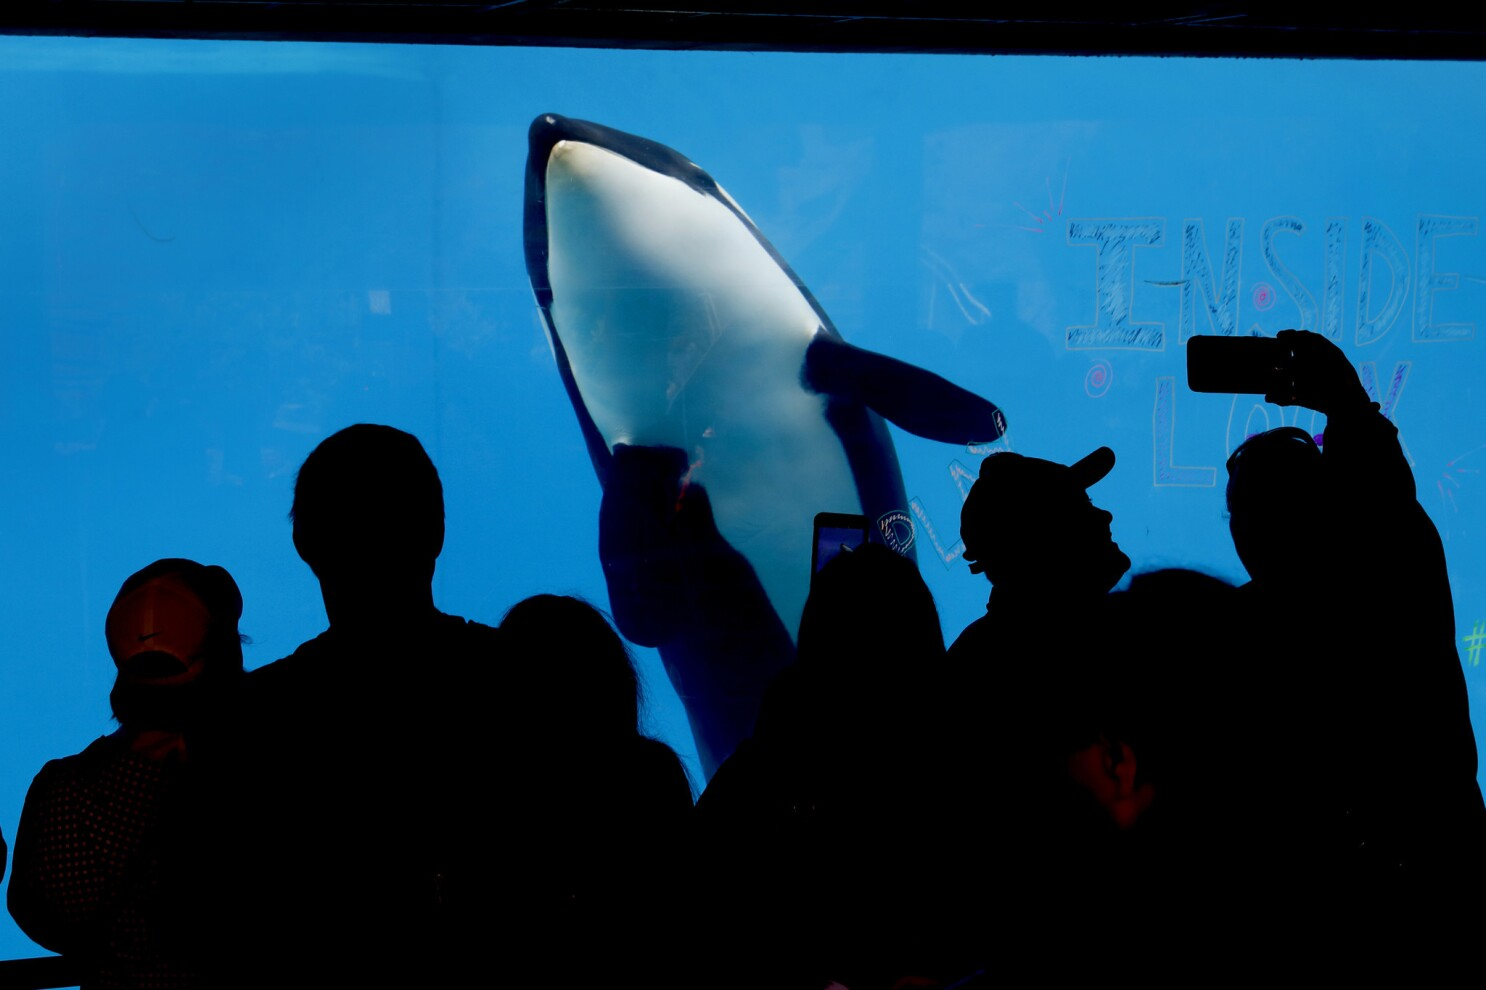 Court hearing on SeaWorld investor case closed to public, judge decides